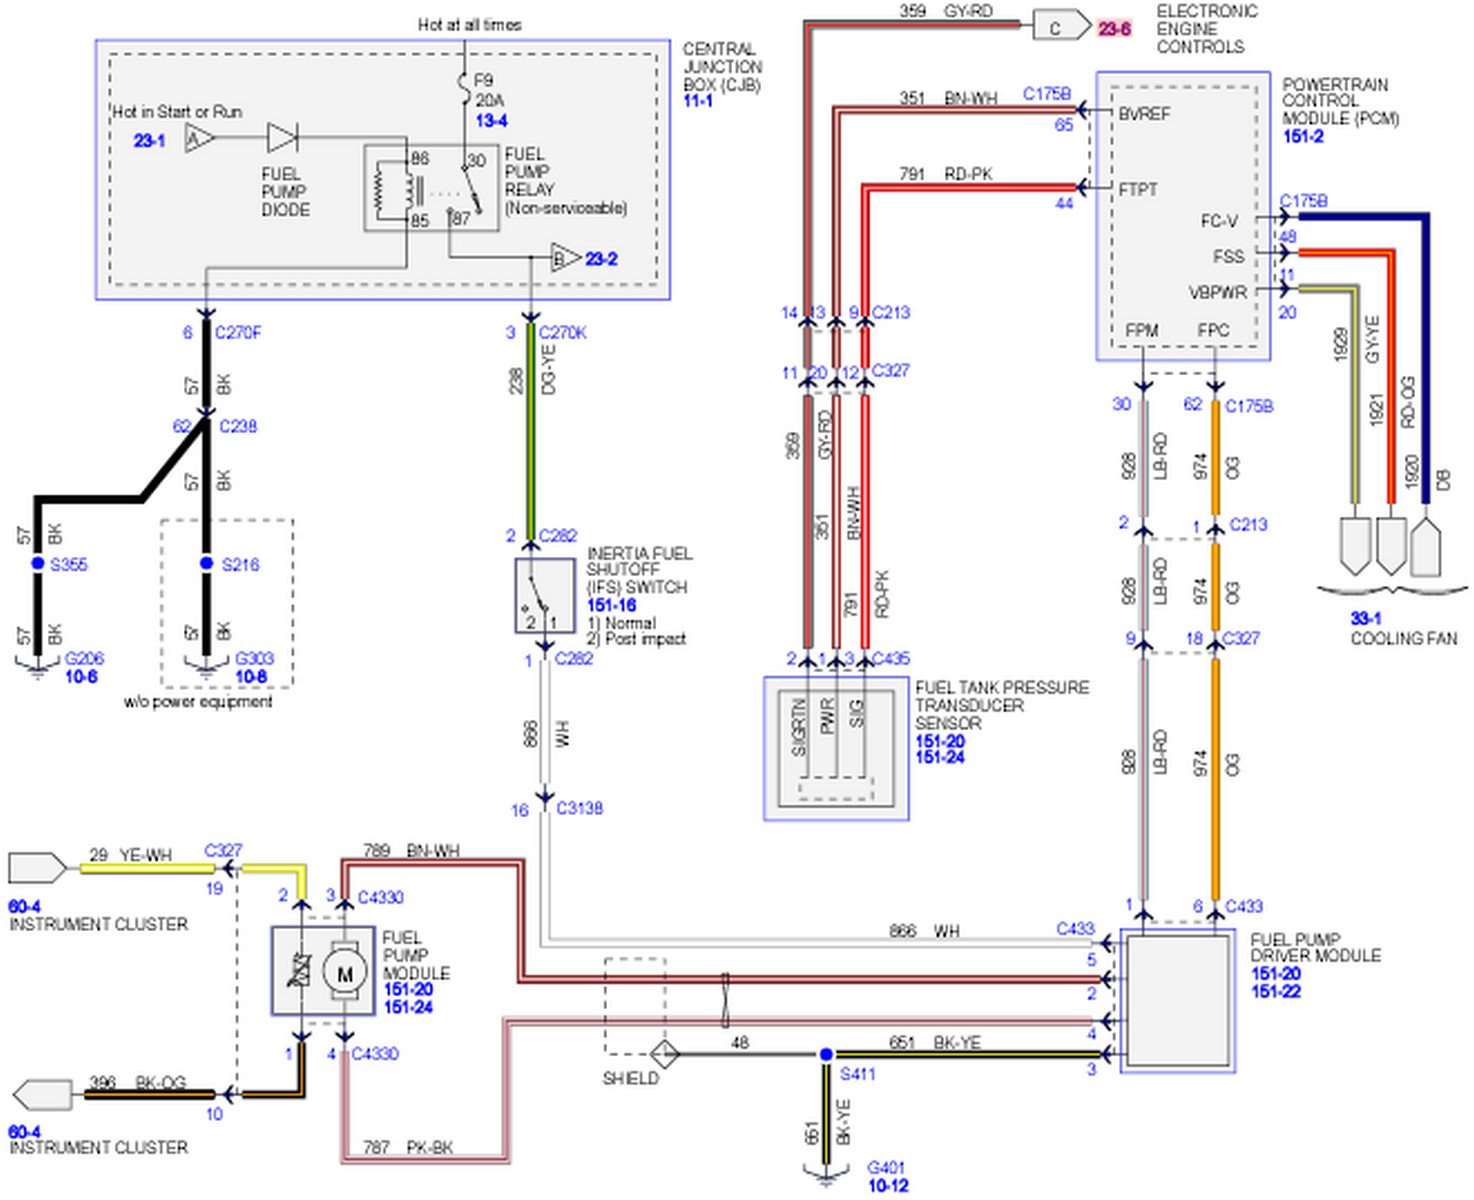 2004 Ford Explorer Fuel Pump Wiring Diagram from ww2.justanswer.com